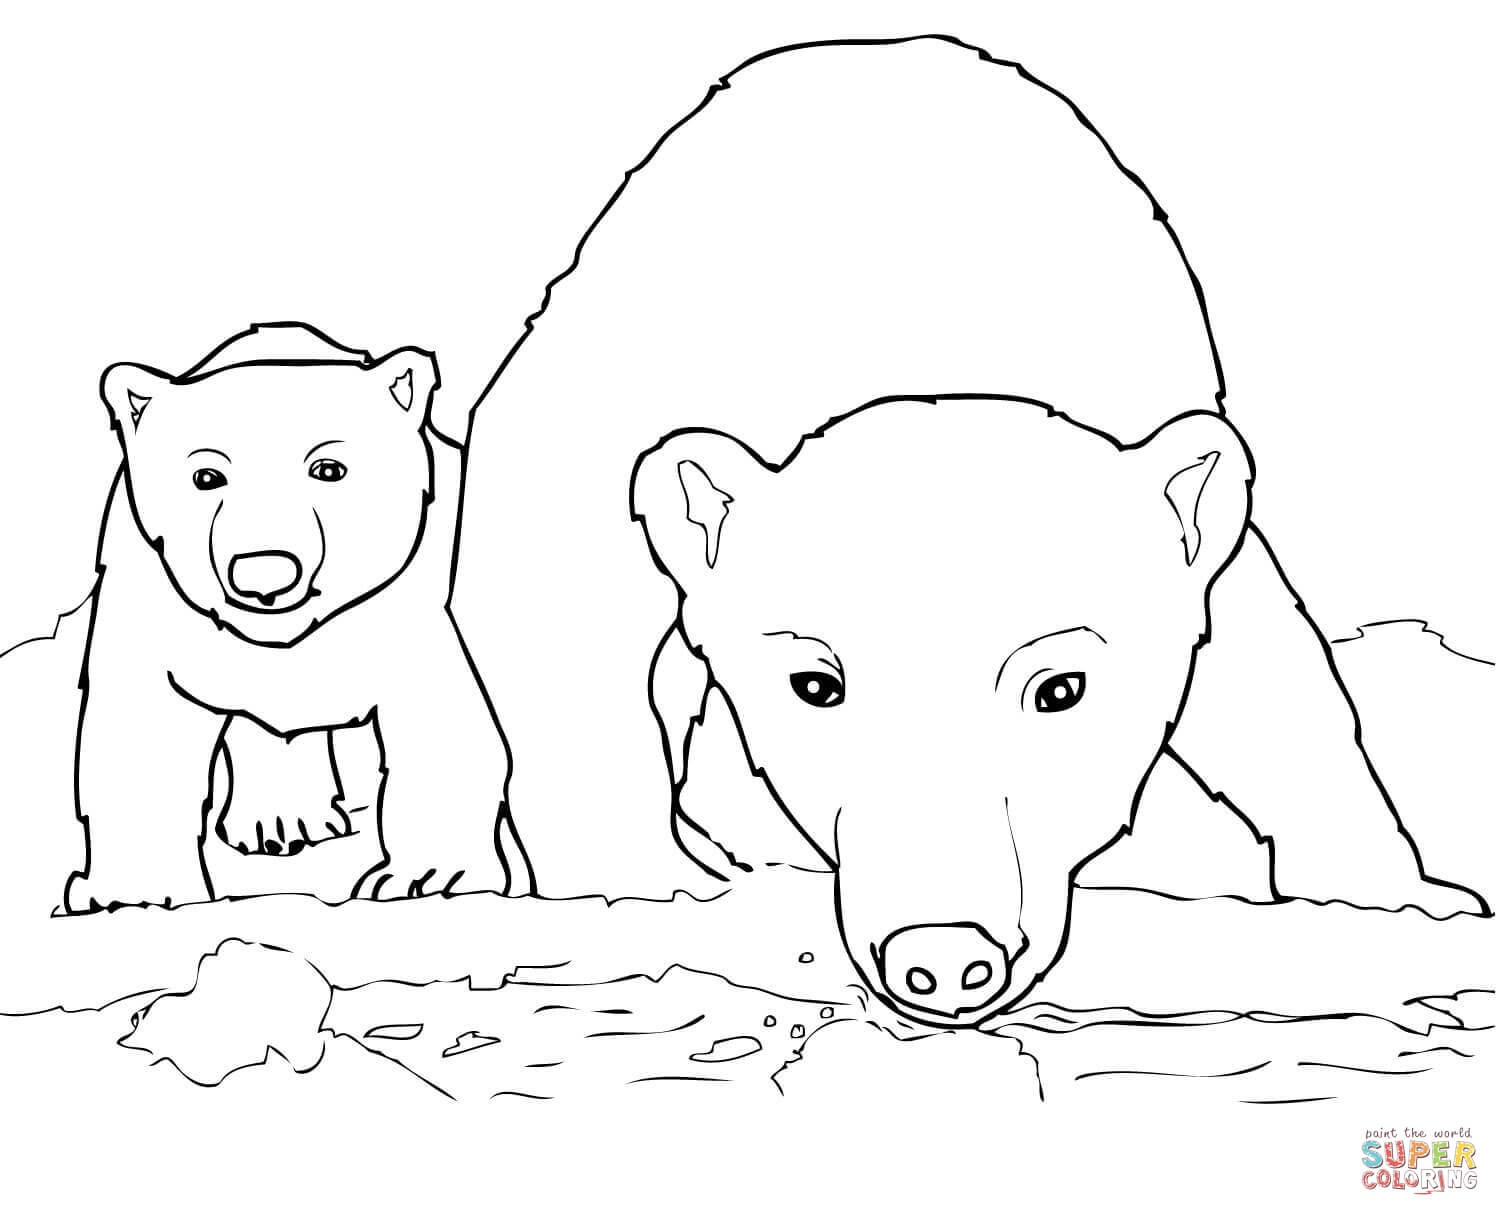 Curious Polar Bear Mother And Cub Coloring Page | Free Printable - Polar Bear Printable Pictures Free